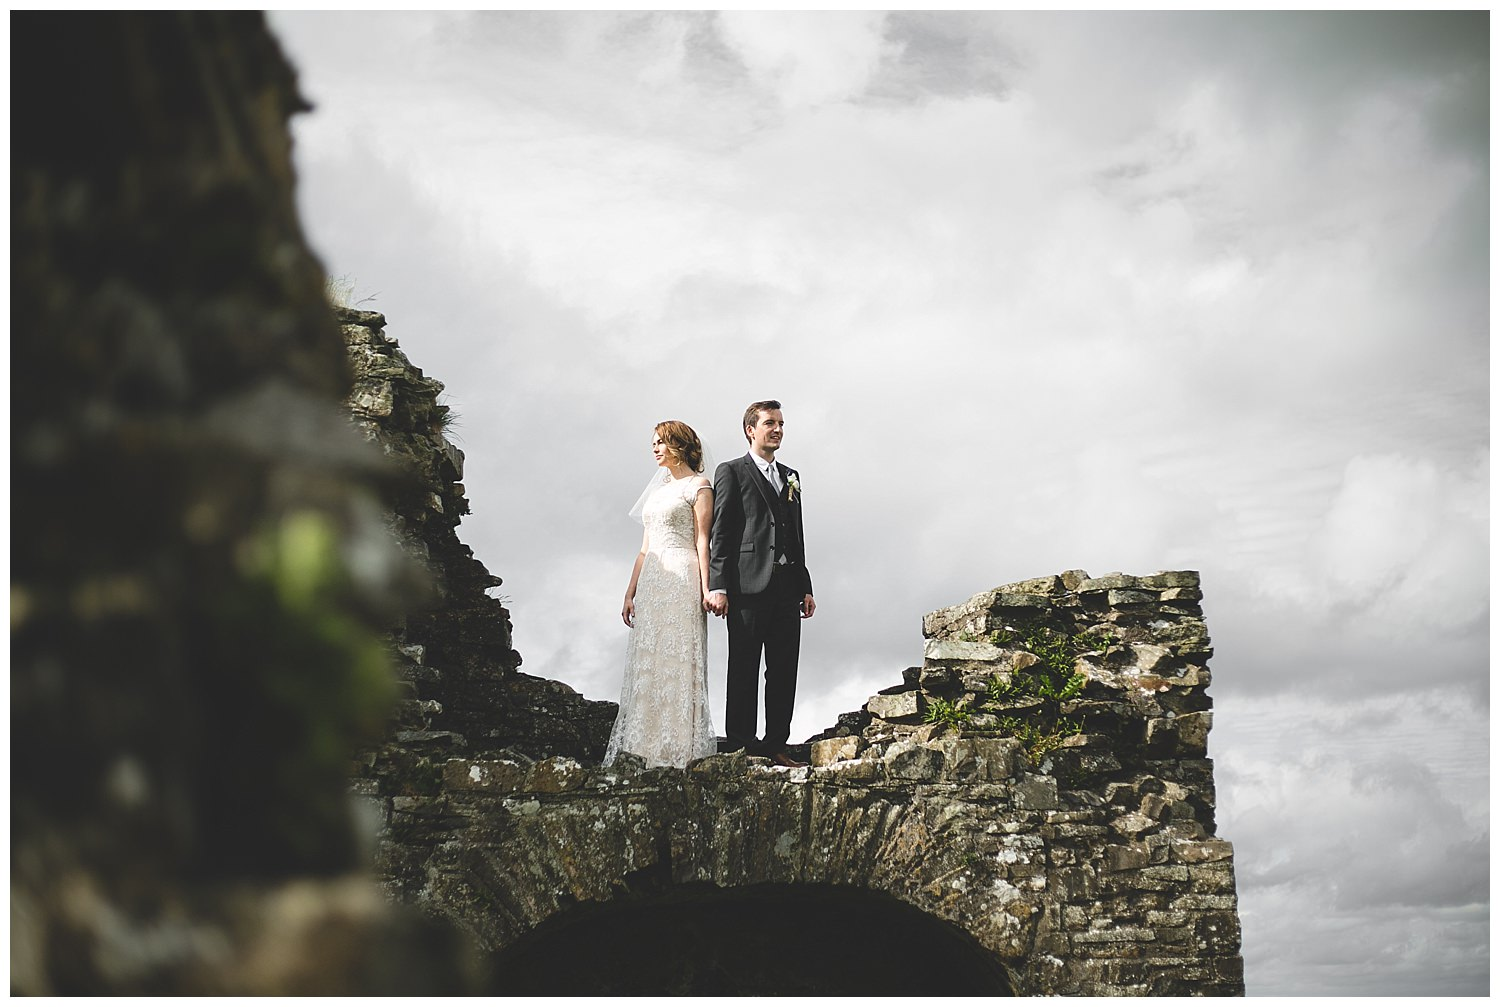 Contemporary, alternative & natural wedding photography - Wild Things Wed